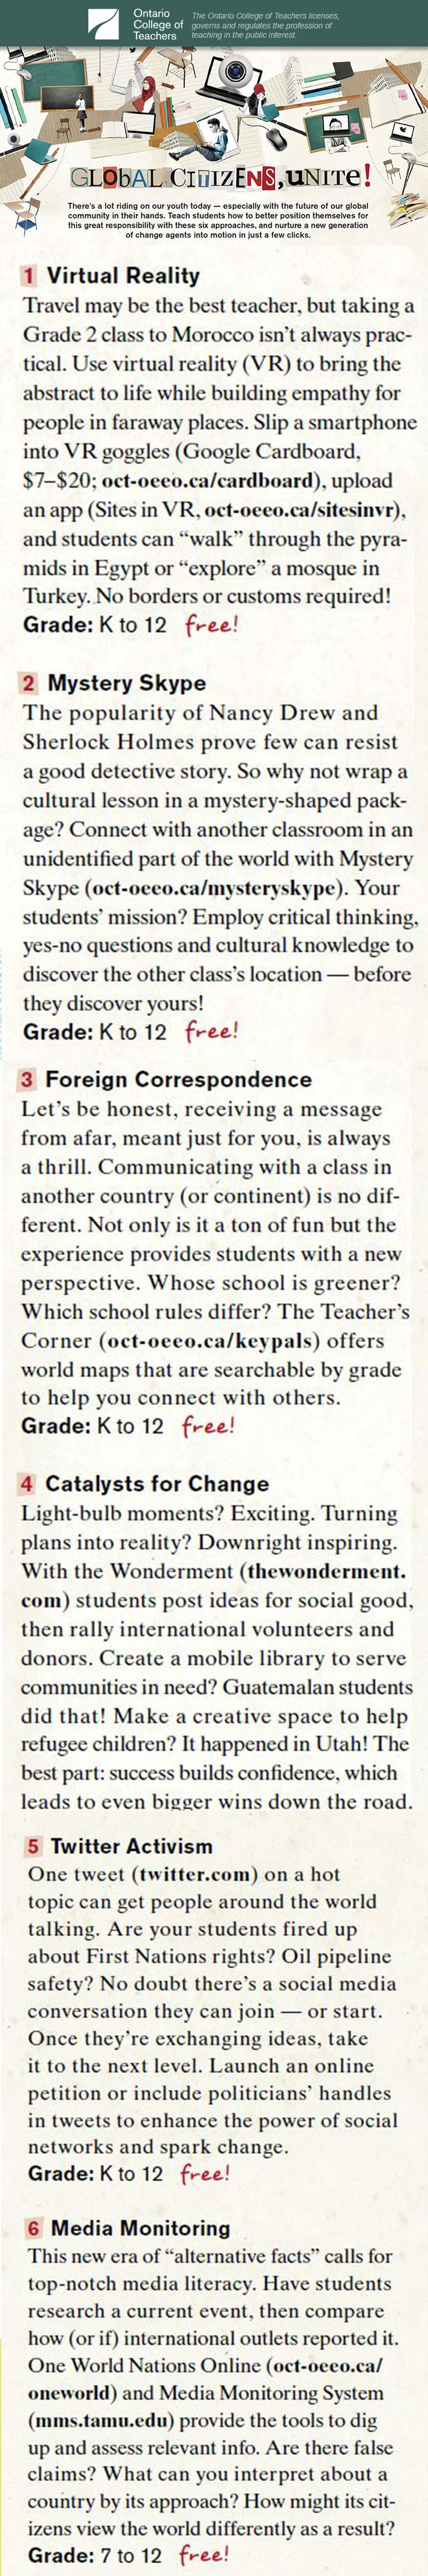 There's a lot riding on our youth today - especially with the future of our global community in their hands. #Teach students how to better position themselves for this great responsibility with these six approaches, and nurture a new generation of change agents into motion in just a few clicks. #edtech #education #teachertools #teacherresources #teachingtools #virtualreality #detective #mystery #communication #activism #media